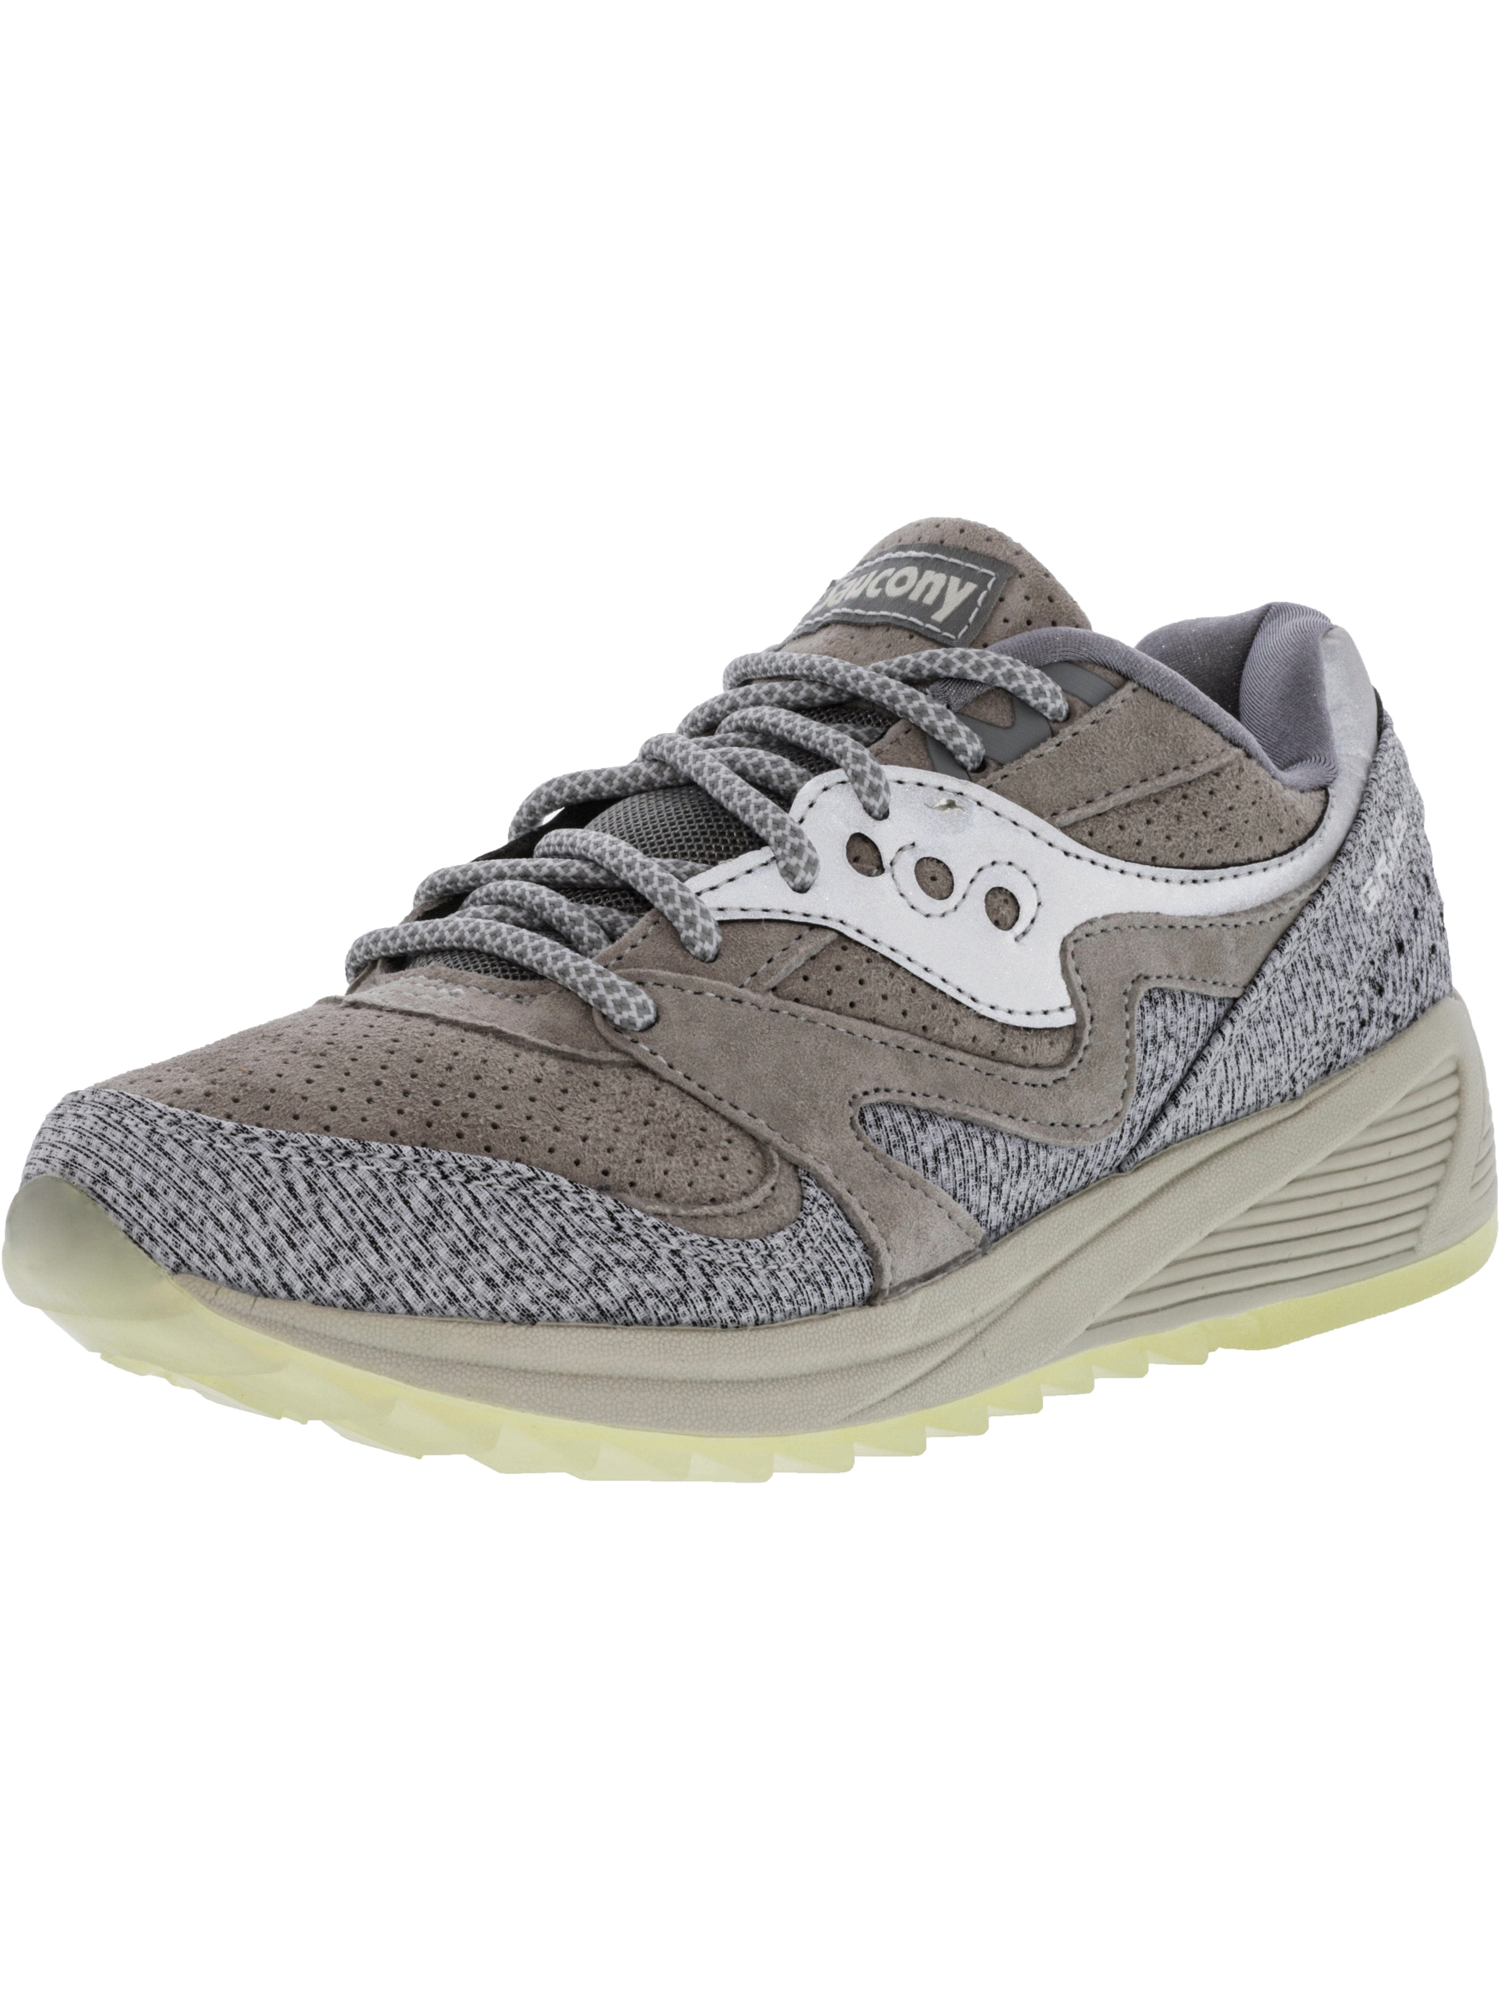 Saucony Men's Grid 8000 Grey Ankle-High Fashion Sneaker 12M by Saucony